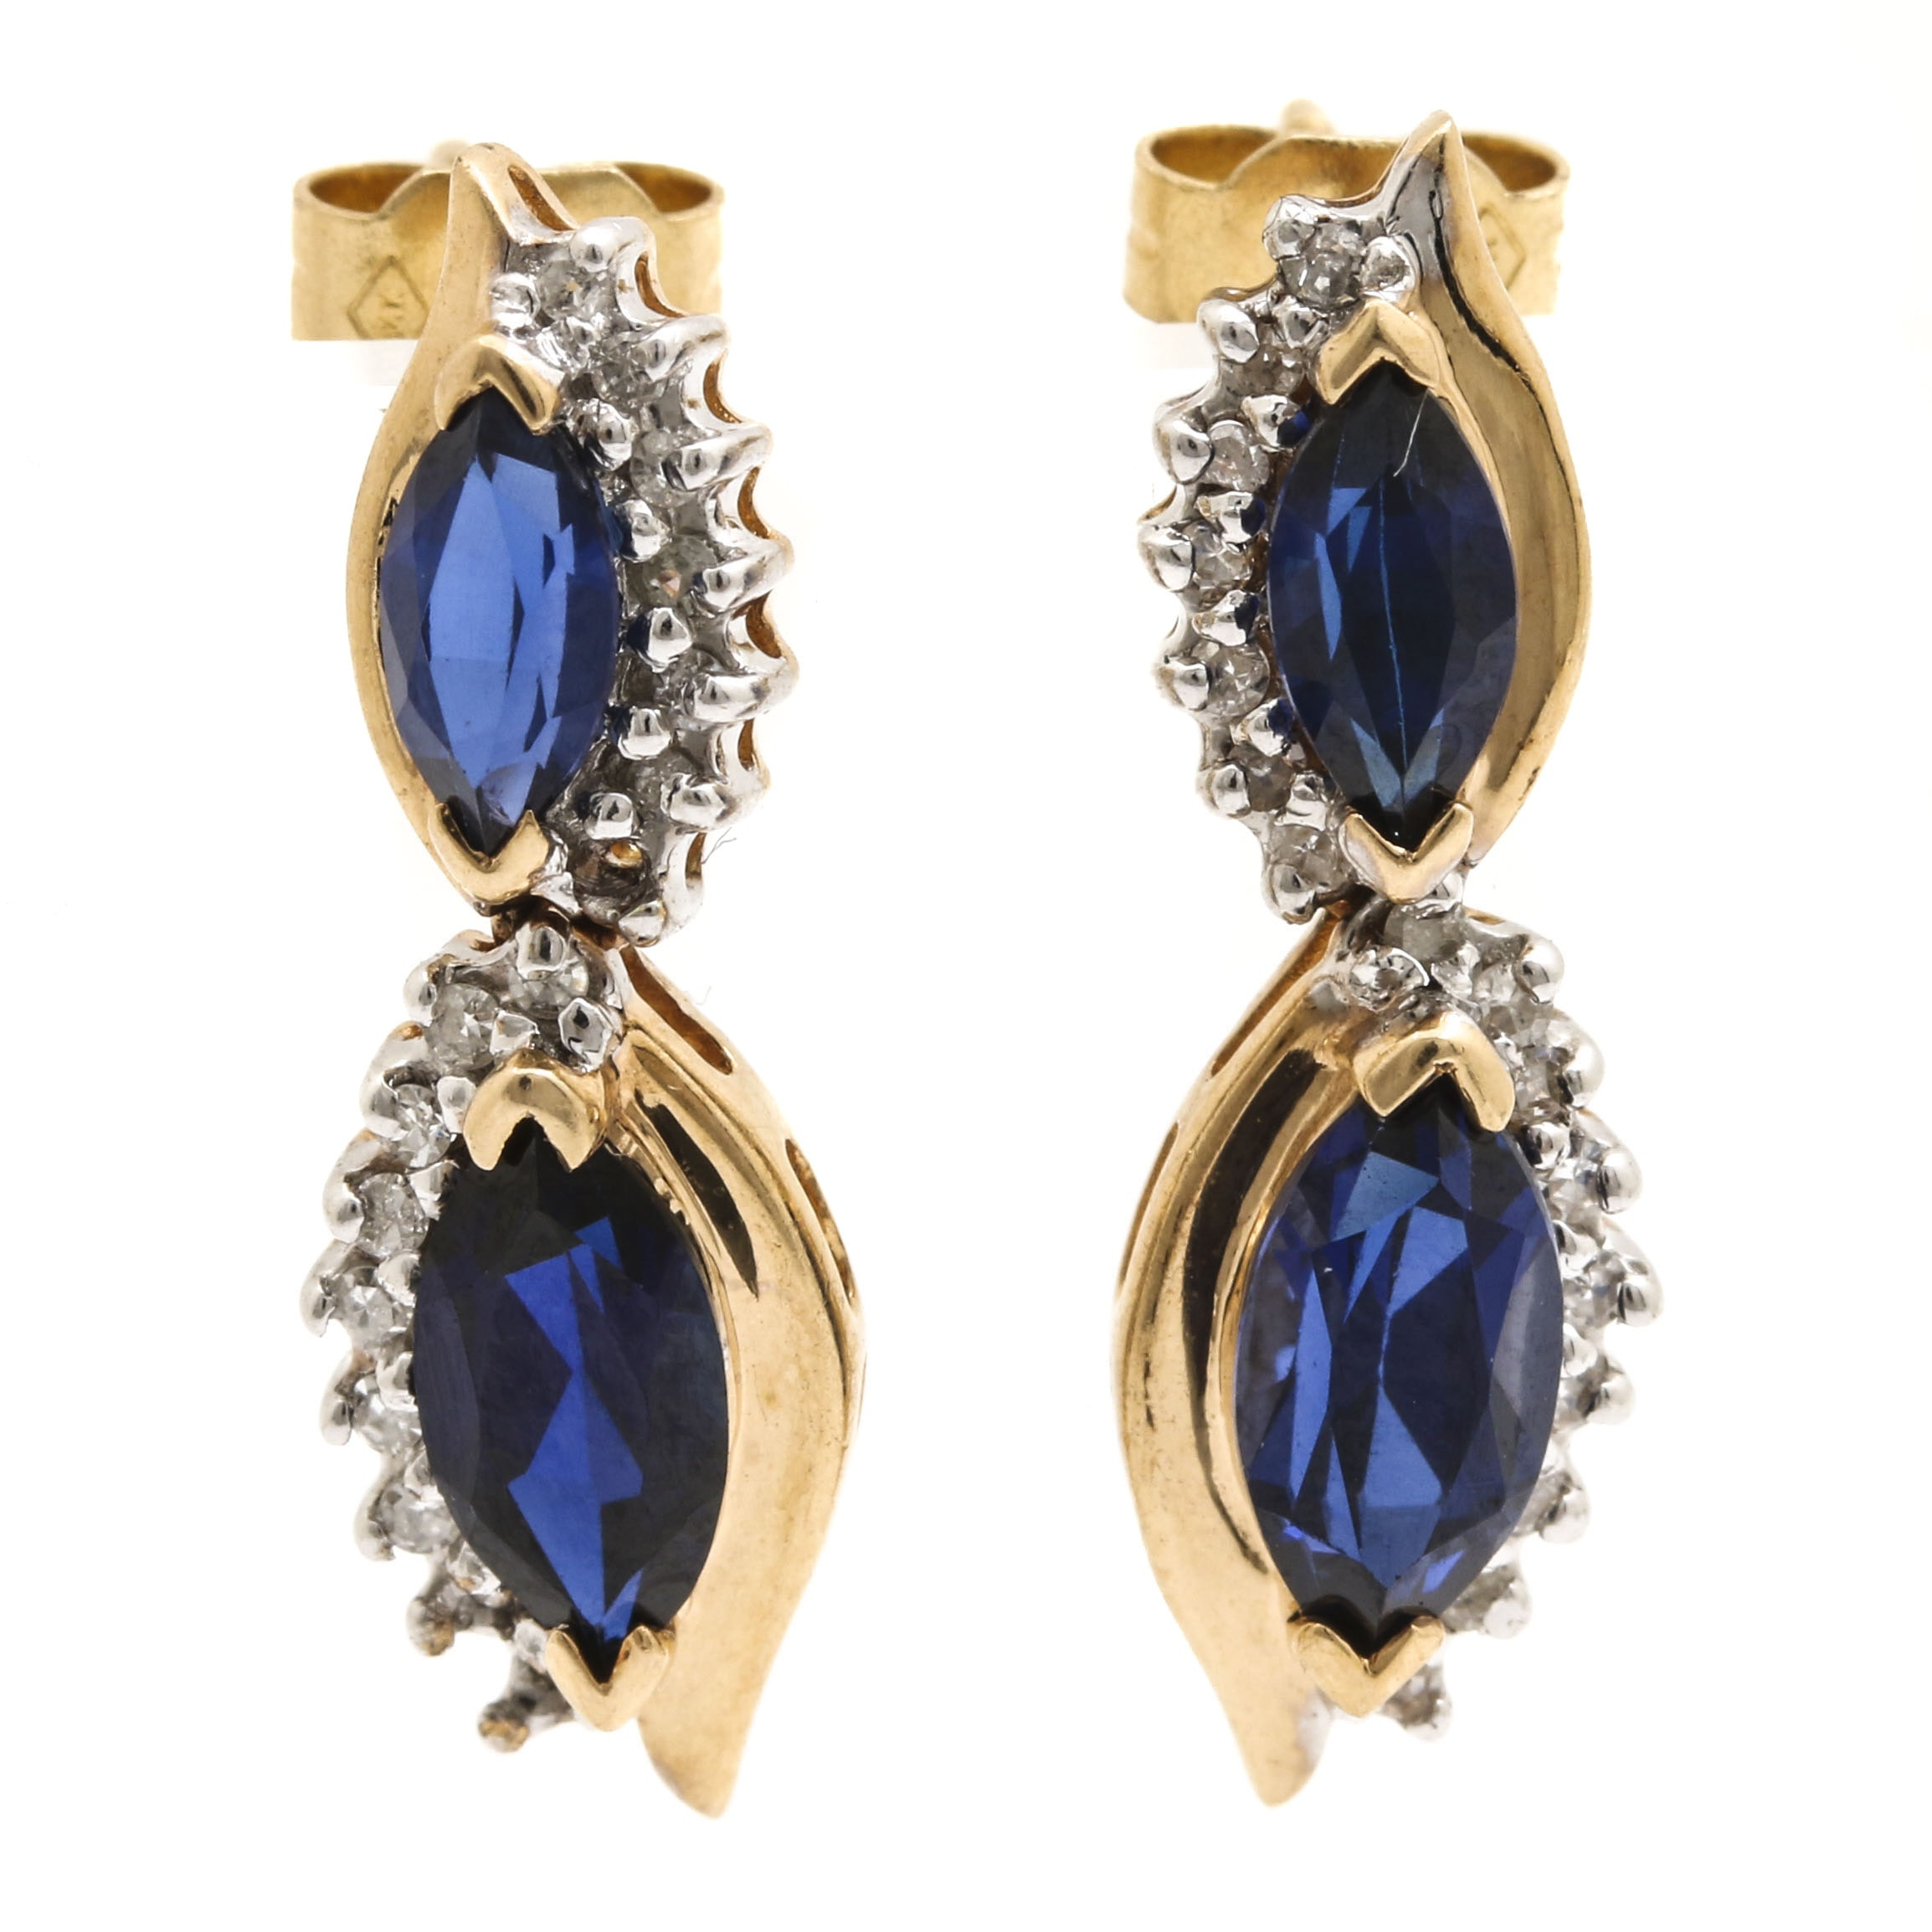 14K Yellow Gold Sapphire and Diamond Dangle Earrings with White Gold Accents